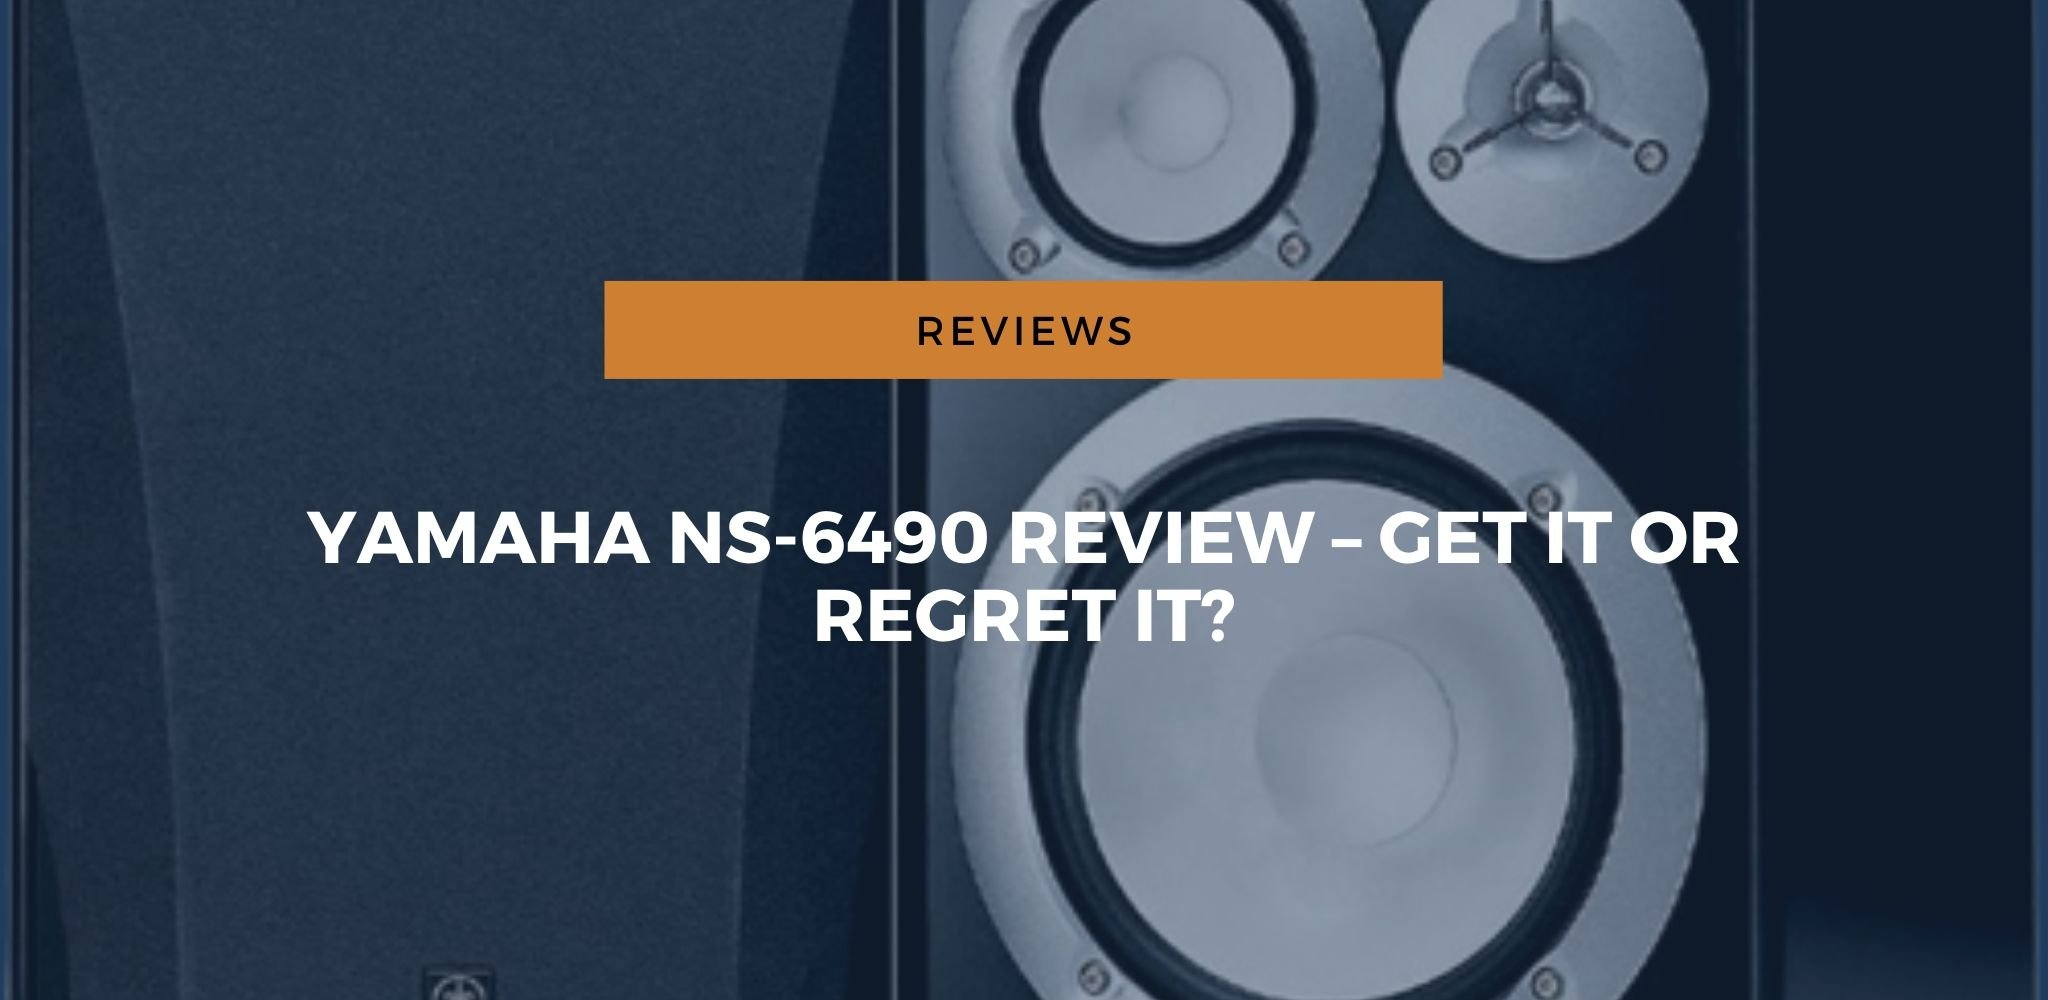 yamaha ns-6490 review